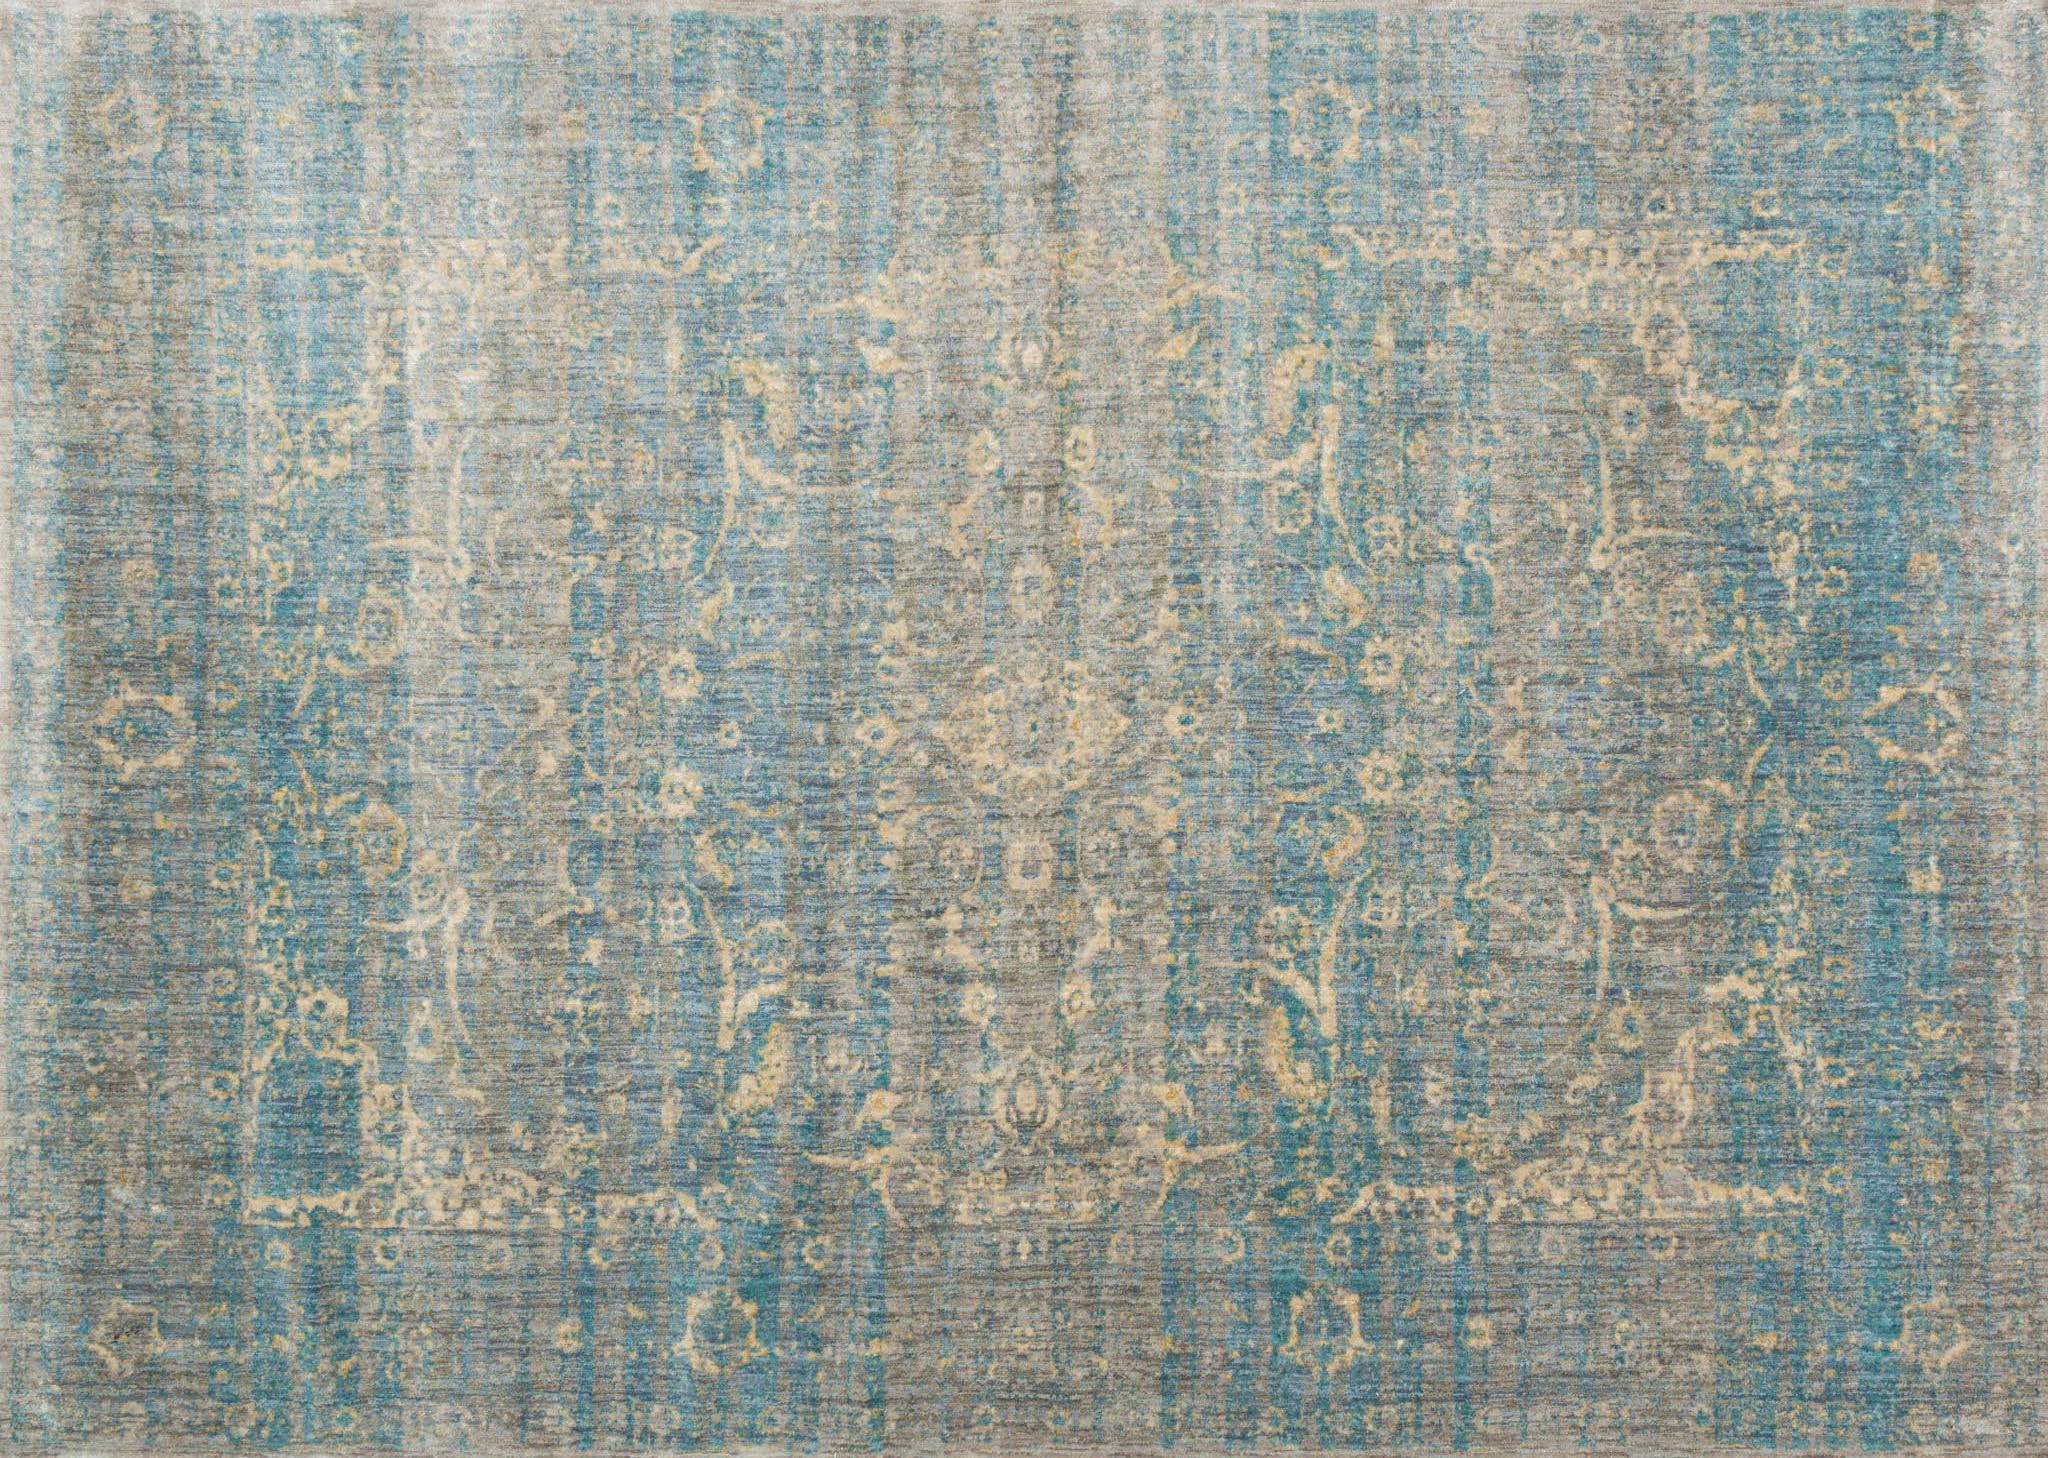 near bright rug patio brown area on marvelous rugs contemporary cheap teal solid yellow large kitchen lowes pale best light and me beige grey navy braided white blue simple